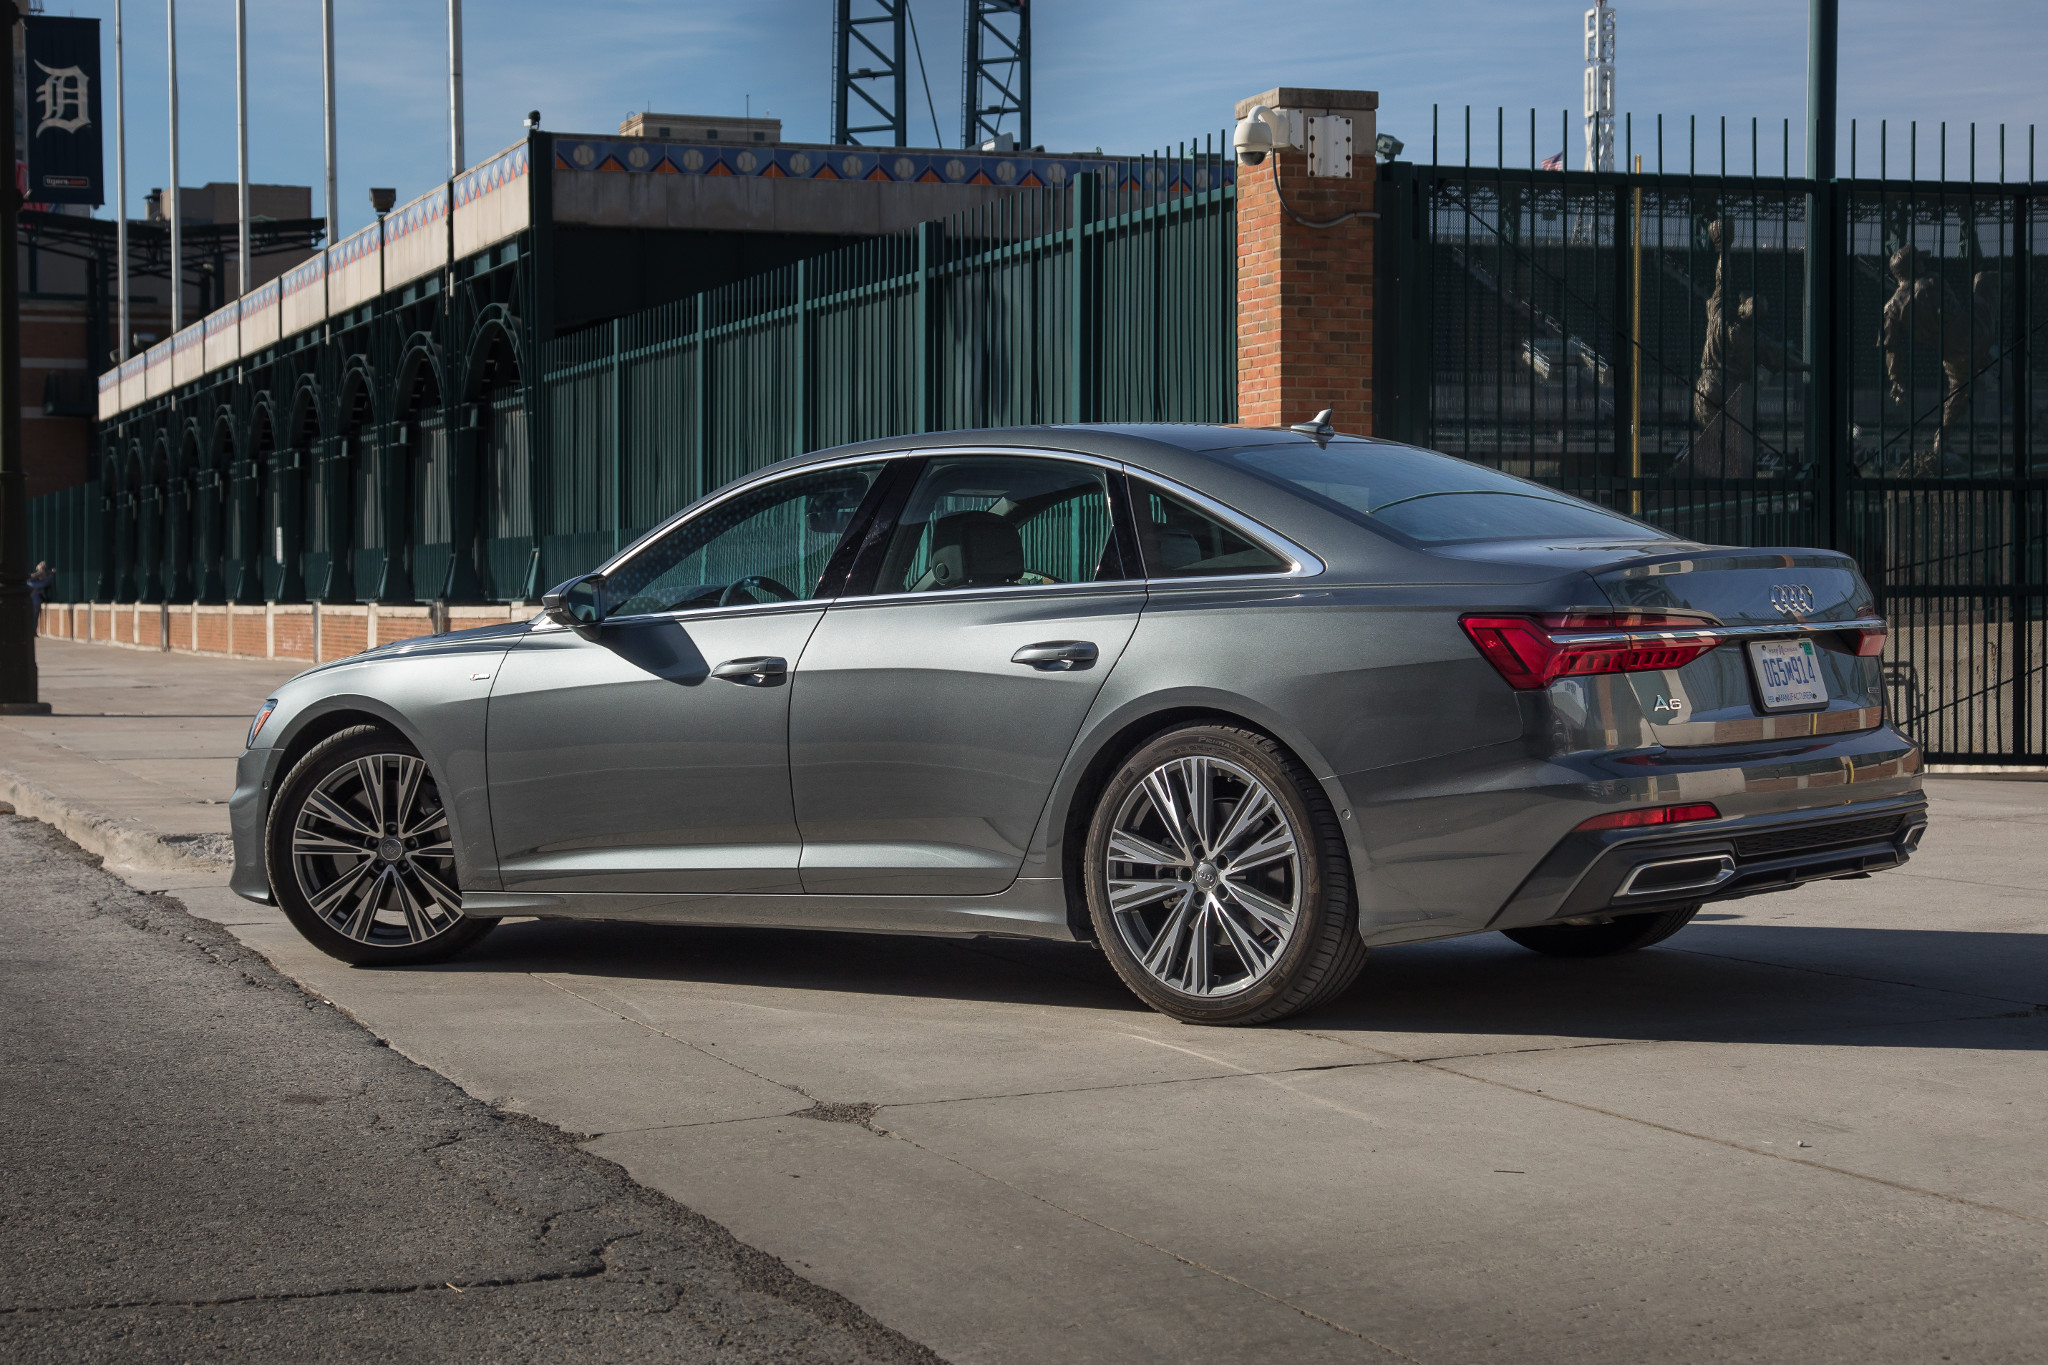 2019 Audi A6: 7 Things We Like (and 3 Not So Much)